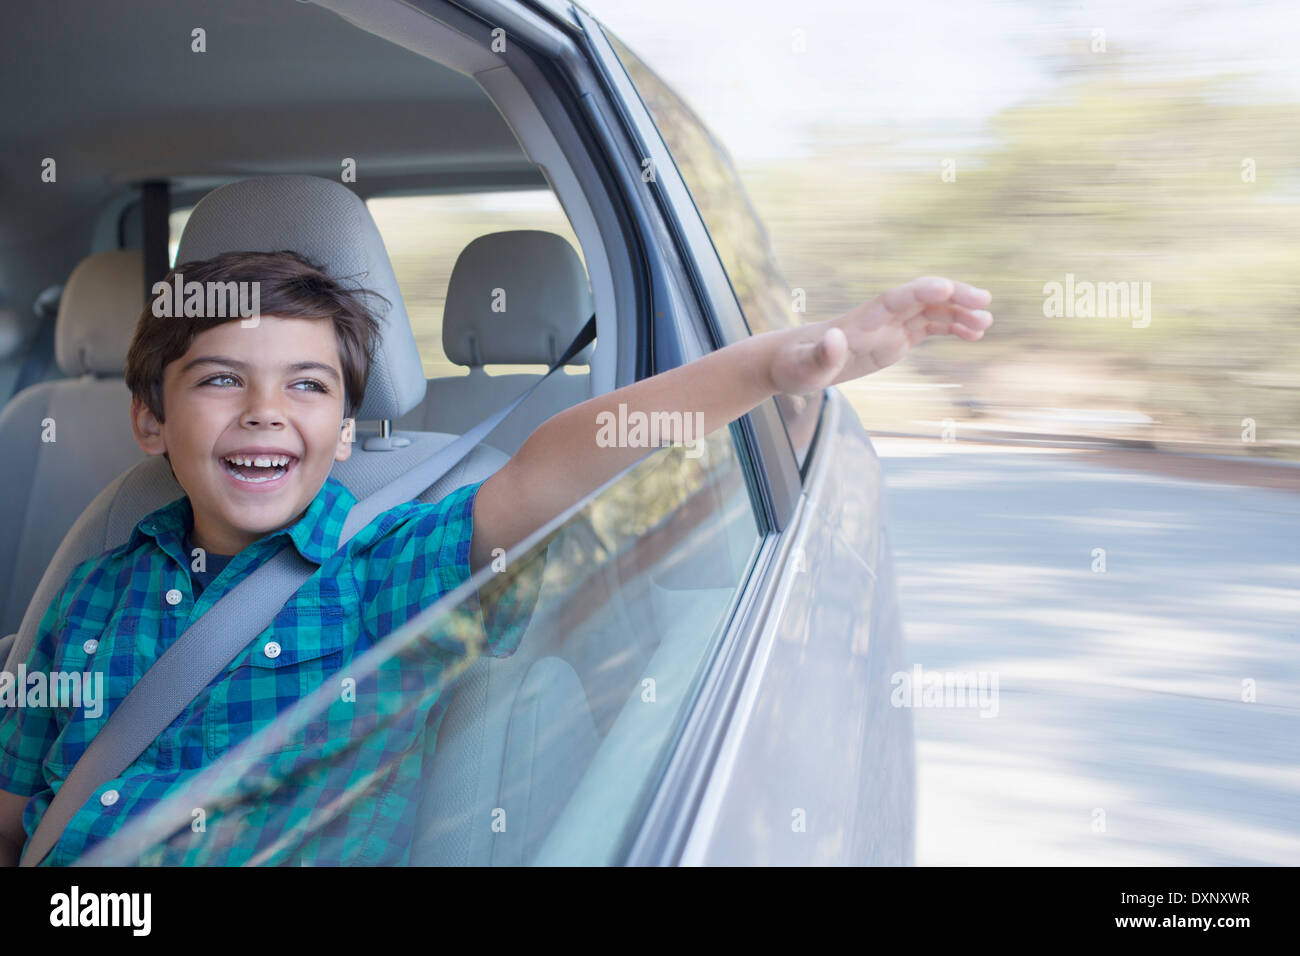 Happy boy sticking hand out window of car - Stock Image